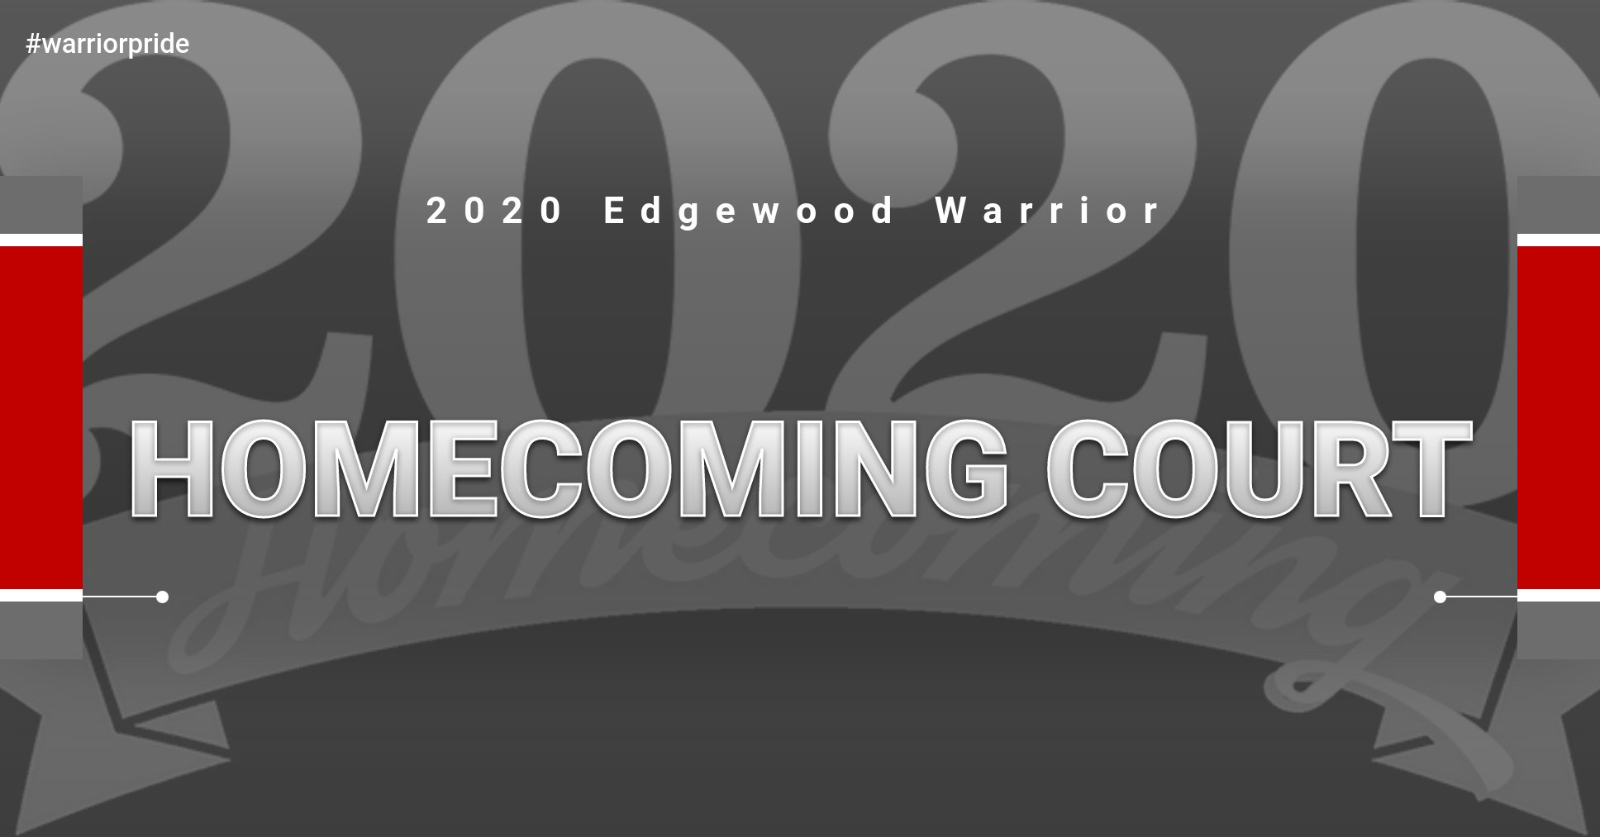 Congratulations to the 2020 Warrior Homecoming Court